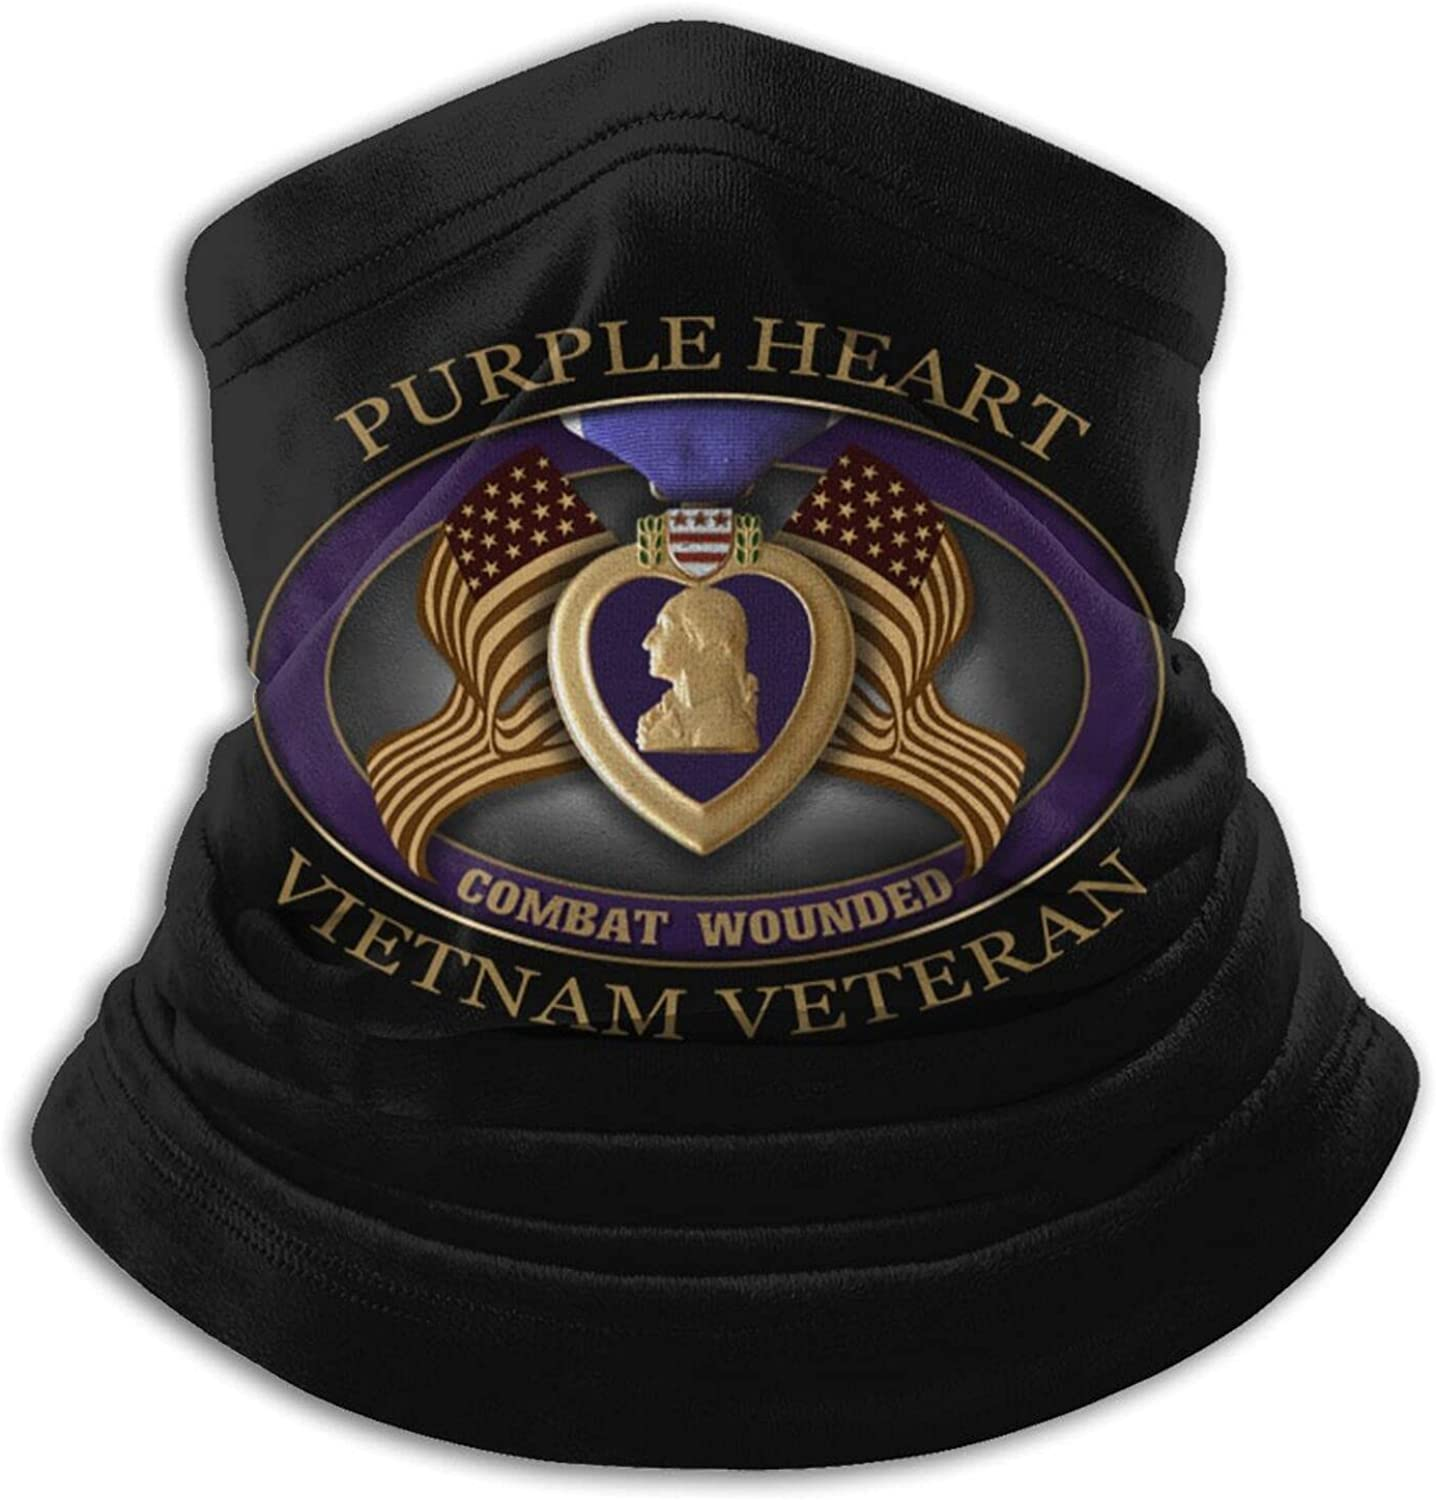 Purple heart us army veteran military medal unisex winter neck gaiter face cover mask, windproof balaclava scarf for fishing, running & hiking